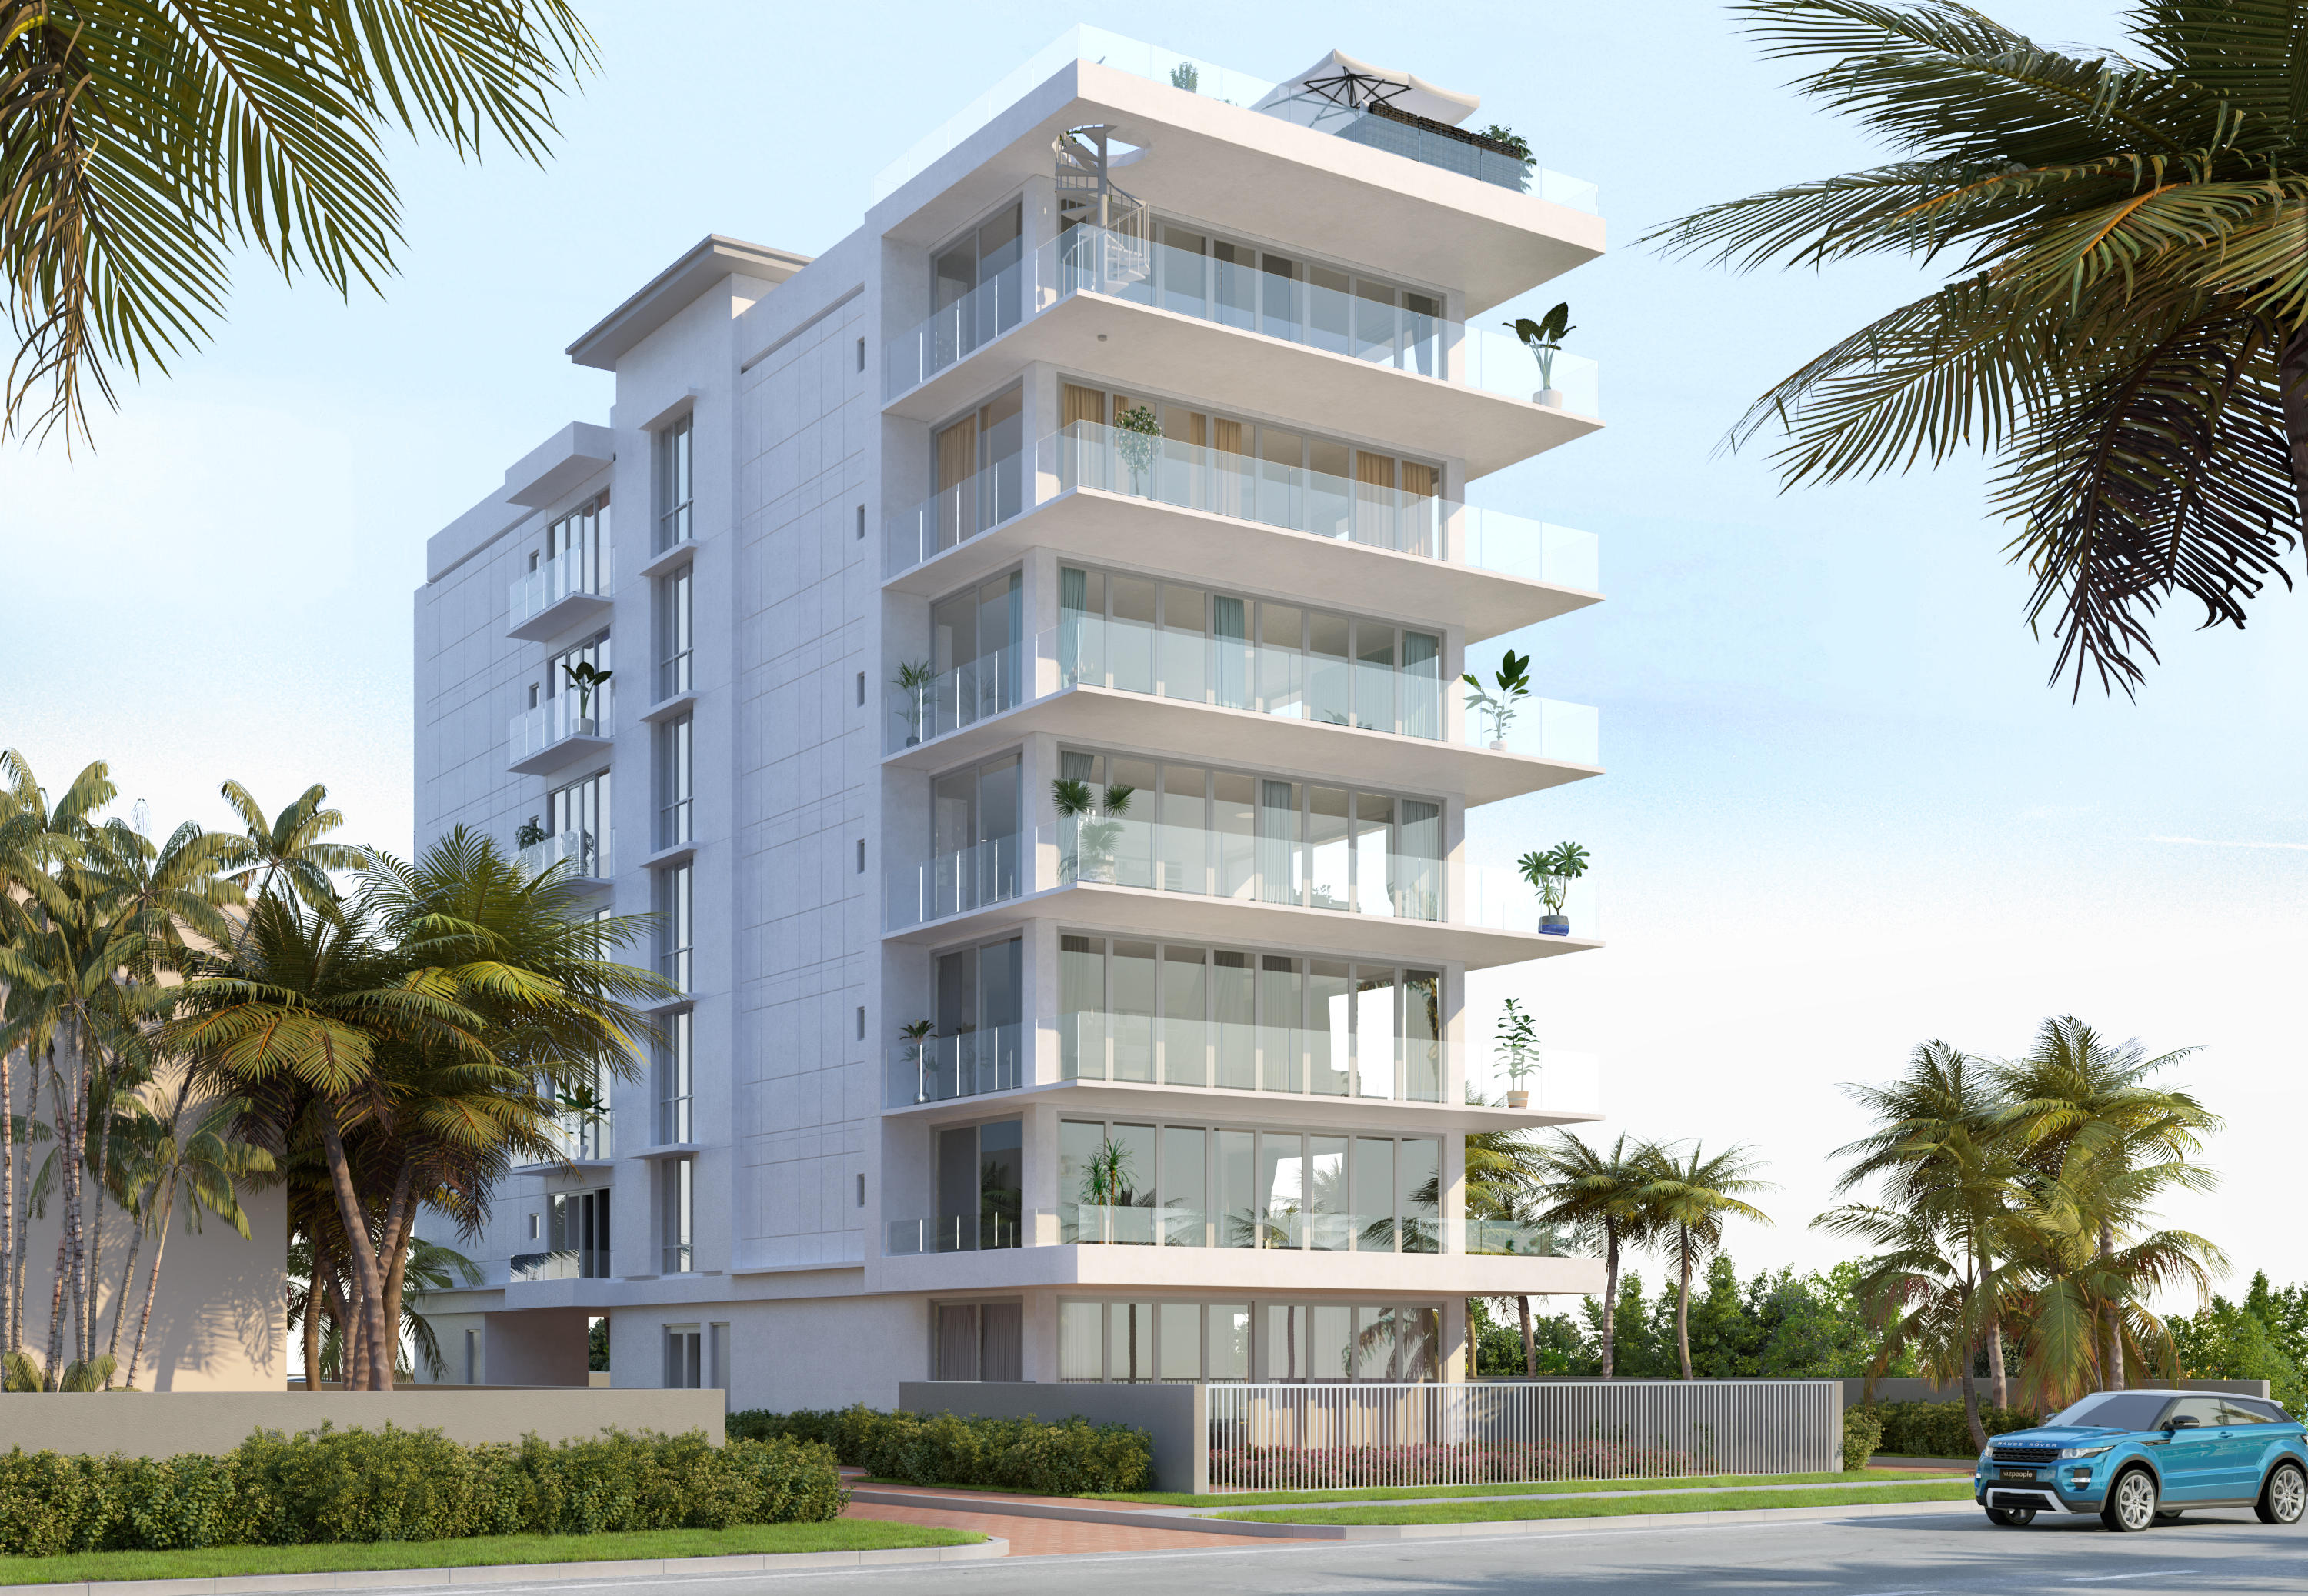 Appartement à vendre en 3611 S Flagler Drive Ph, West Palm Beach, Floride ,33405  , États-Unis